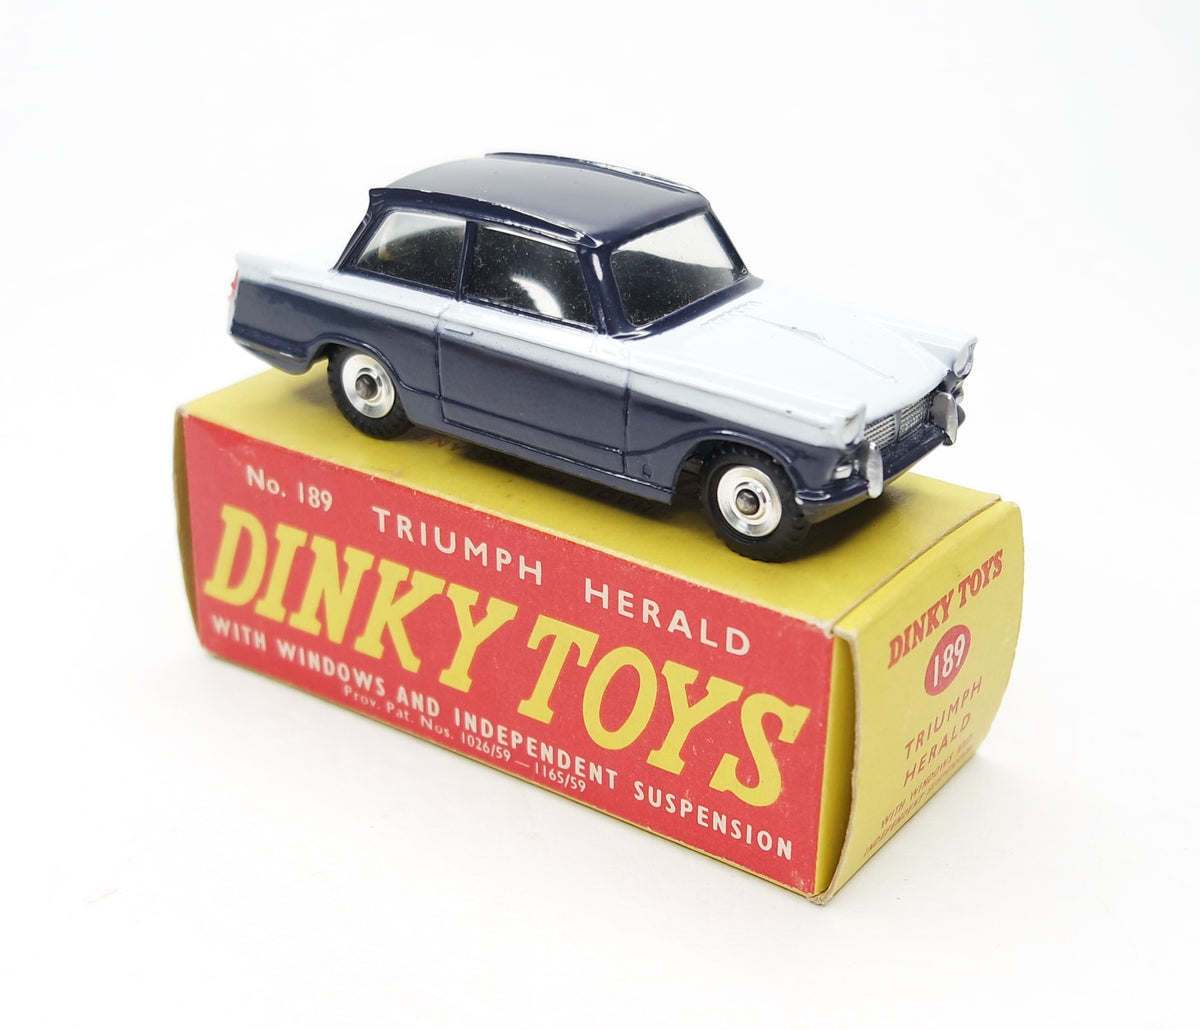 .Dinky Toys 189 Triumph Herald 'Promotional'  Very Near Mint/Boxed (Monaco blue & White) (C.C).